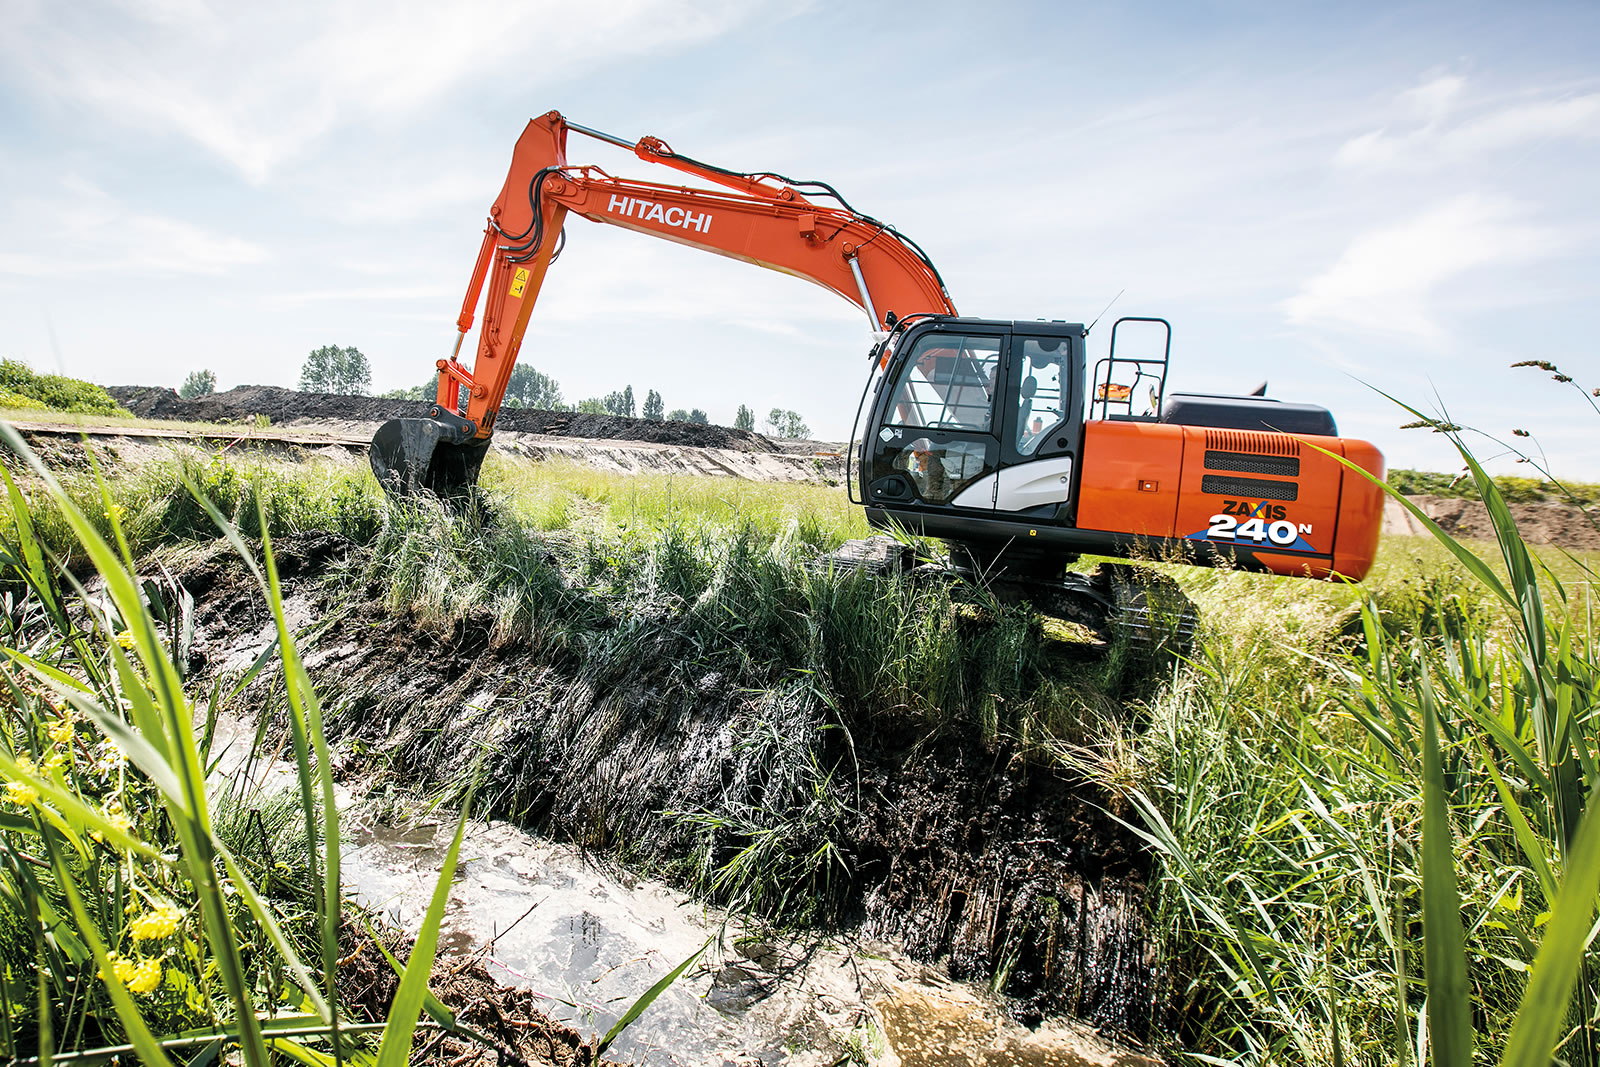 Hitachi ZX240LCN-6 excavator with short-tail swing